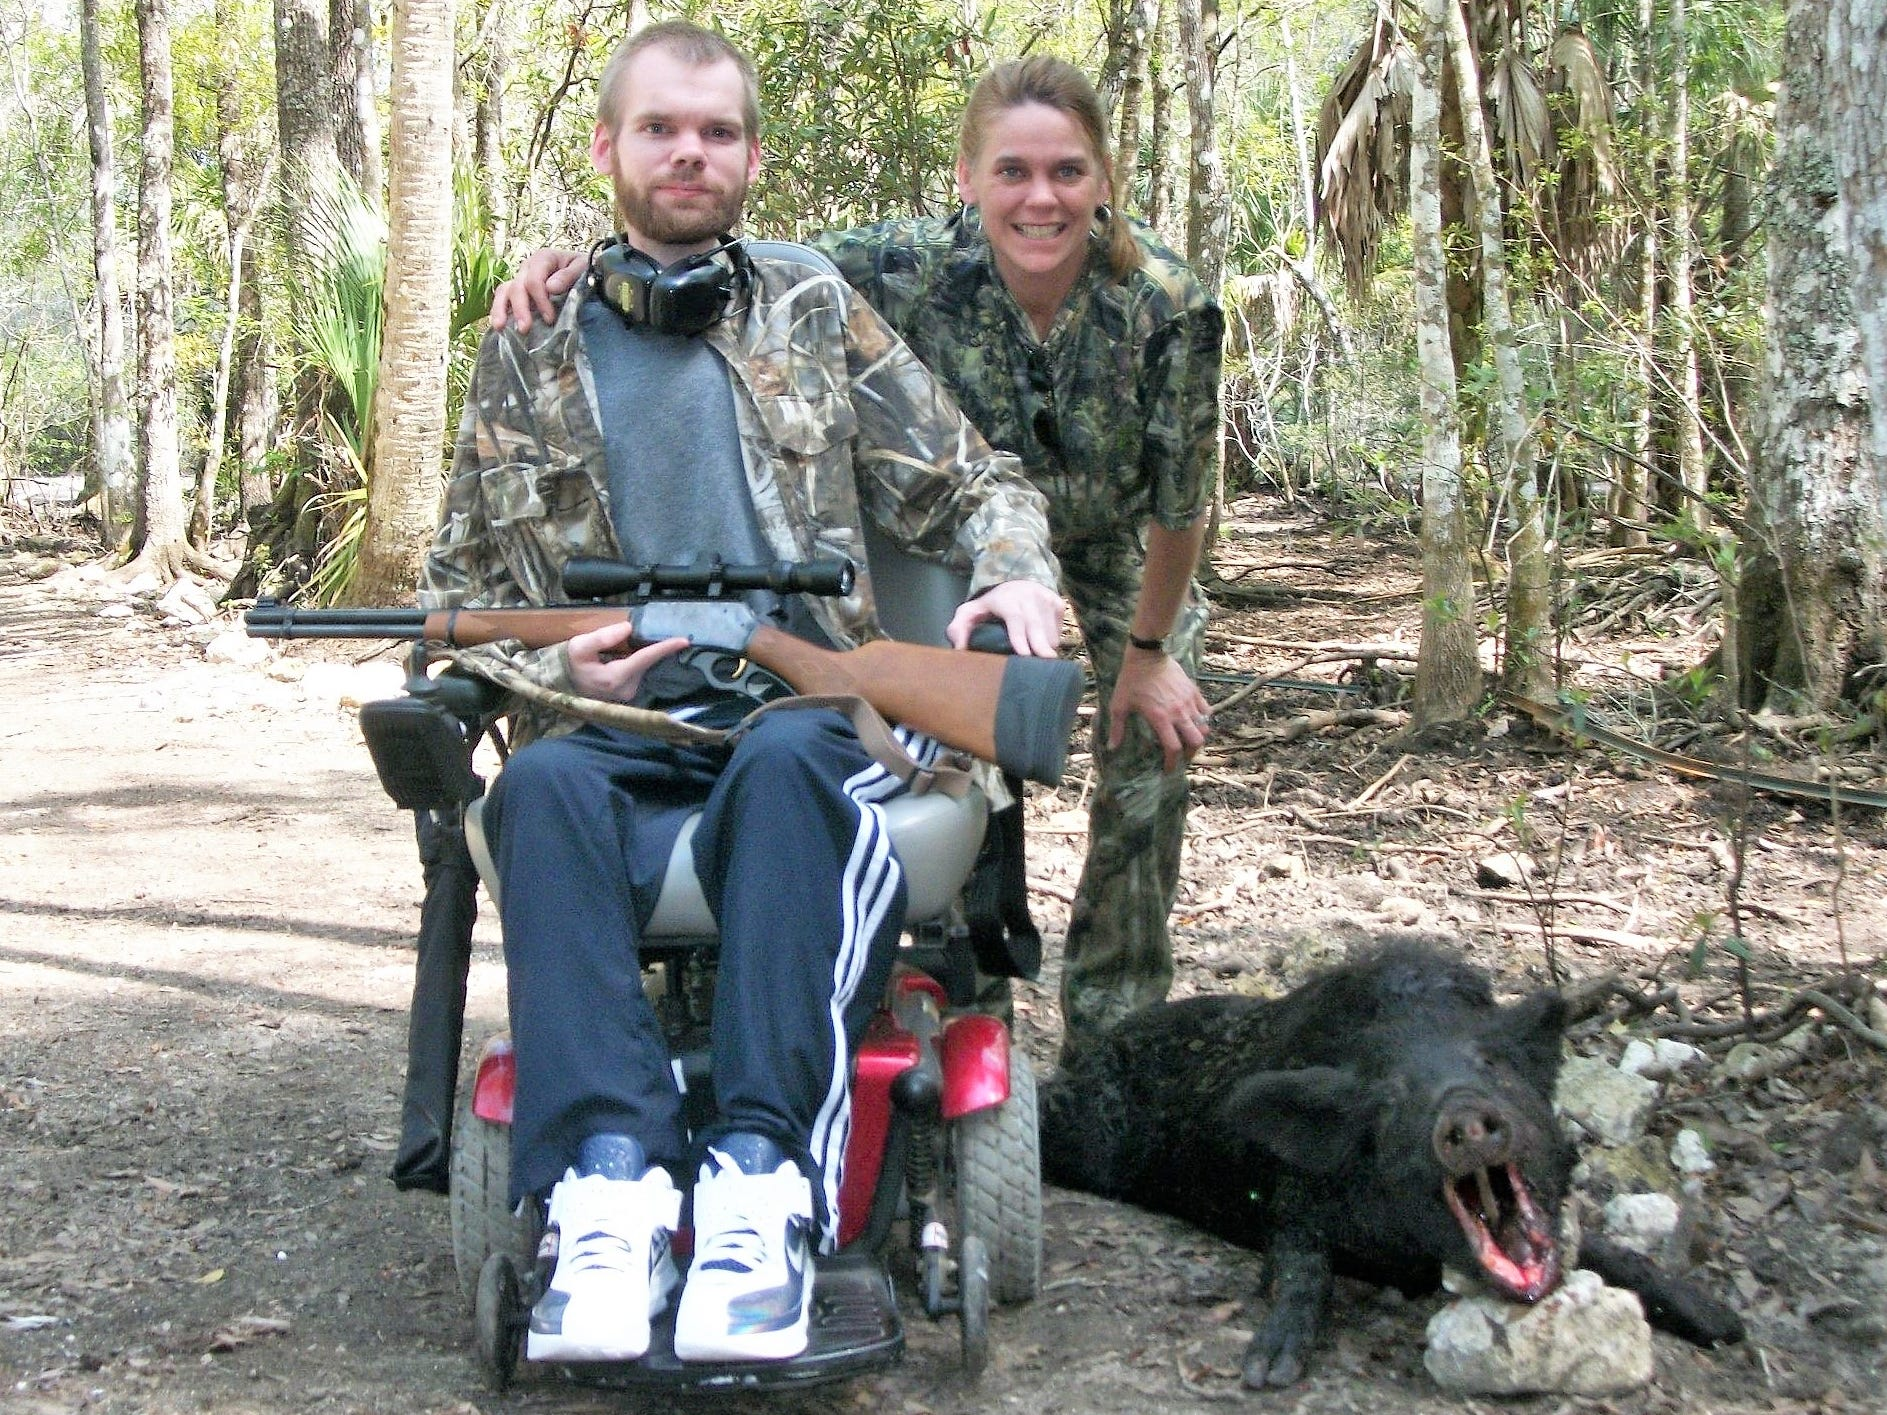 Despite being impaired by muscular dystrophy, Alan Ramsay shared a passion for hunting and outdoor activities with his mother Stacy Evans.